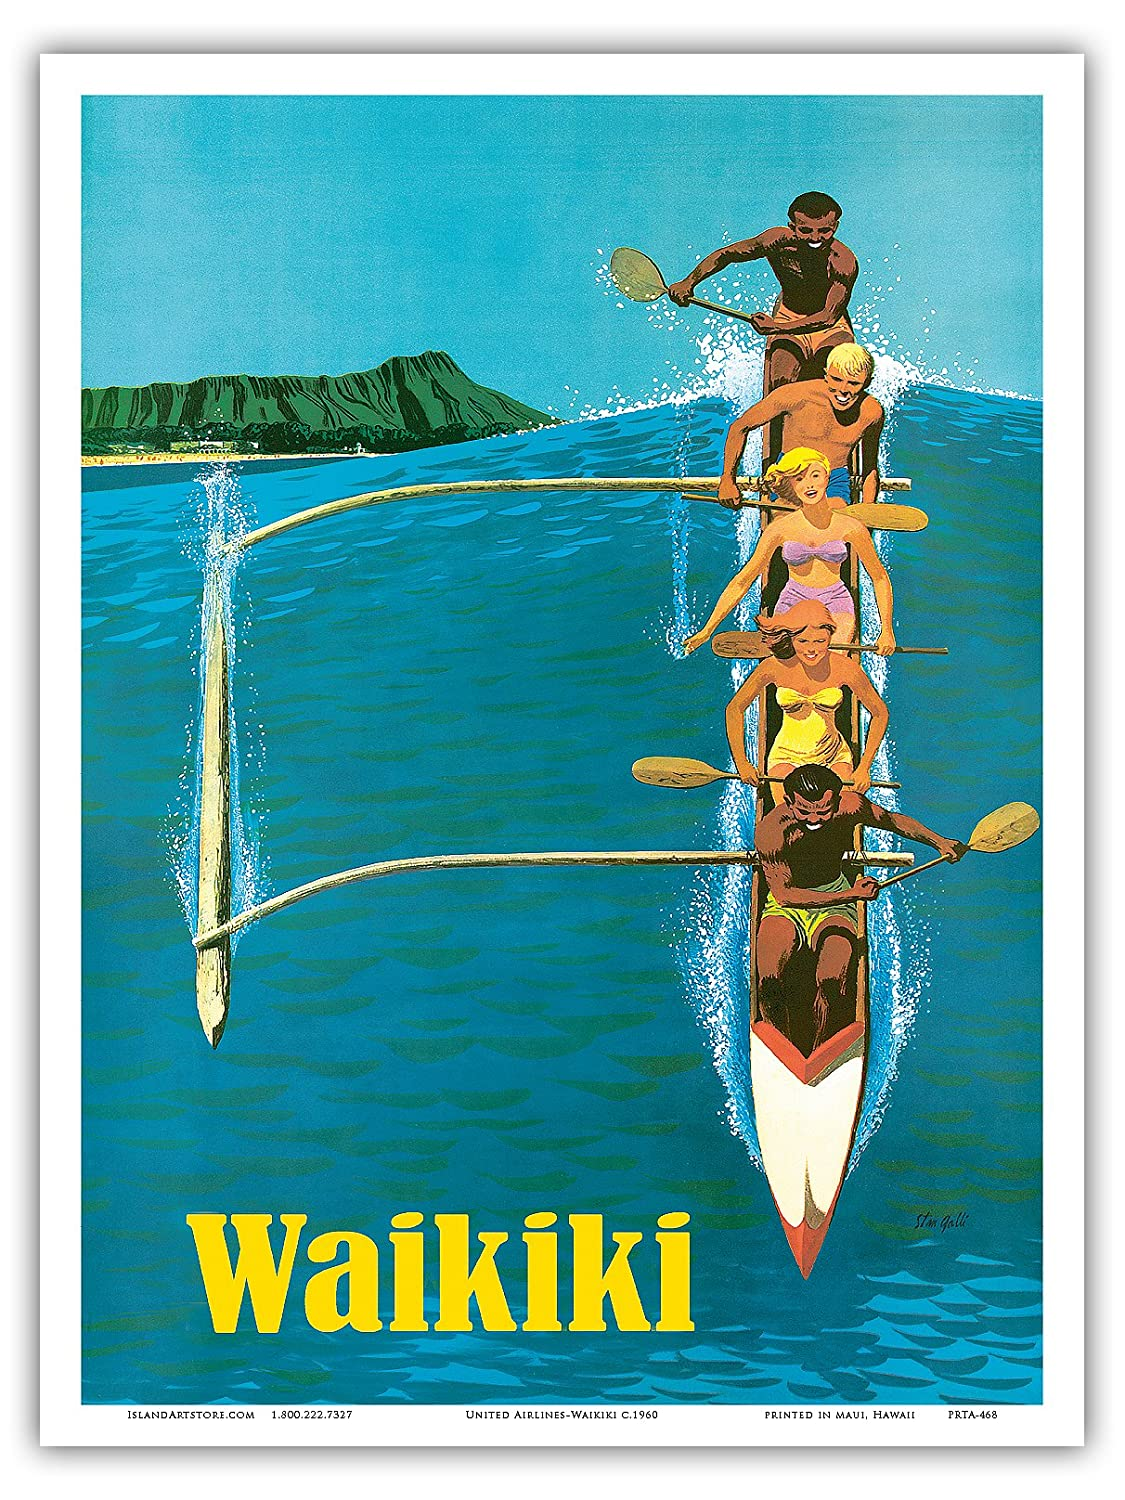 Pacifica Island Art United Air Lines-Waikiki-Canoa de Surf ...